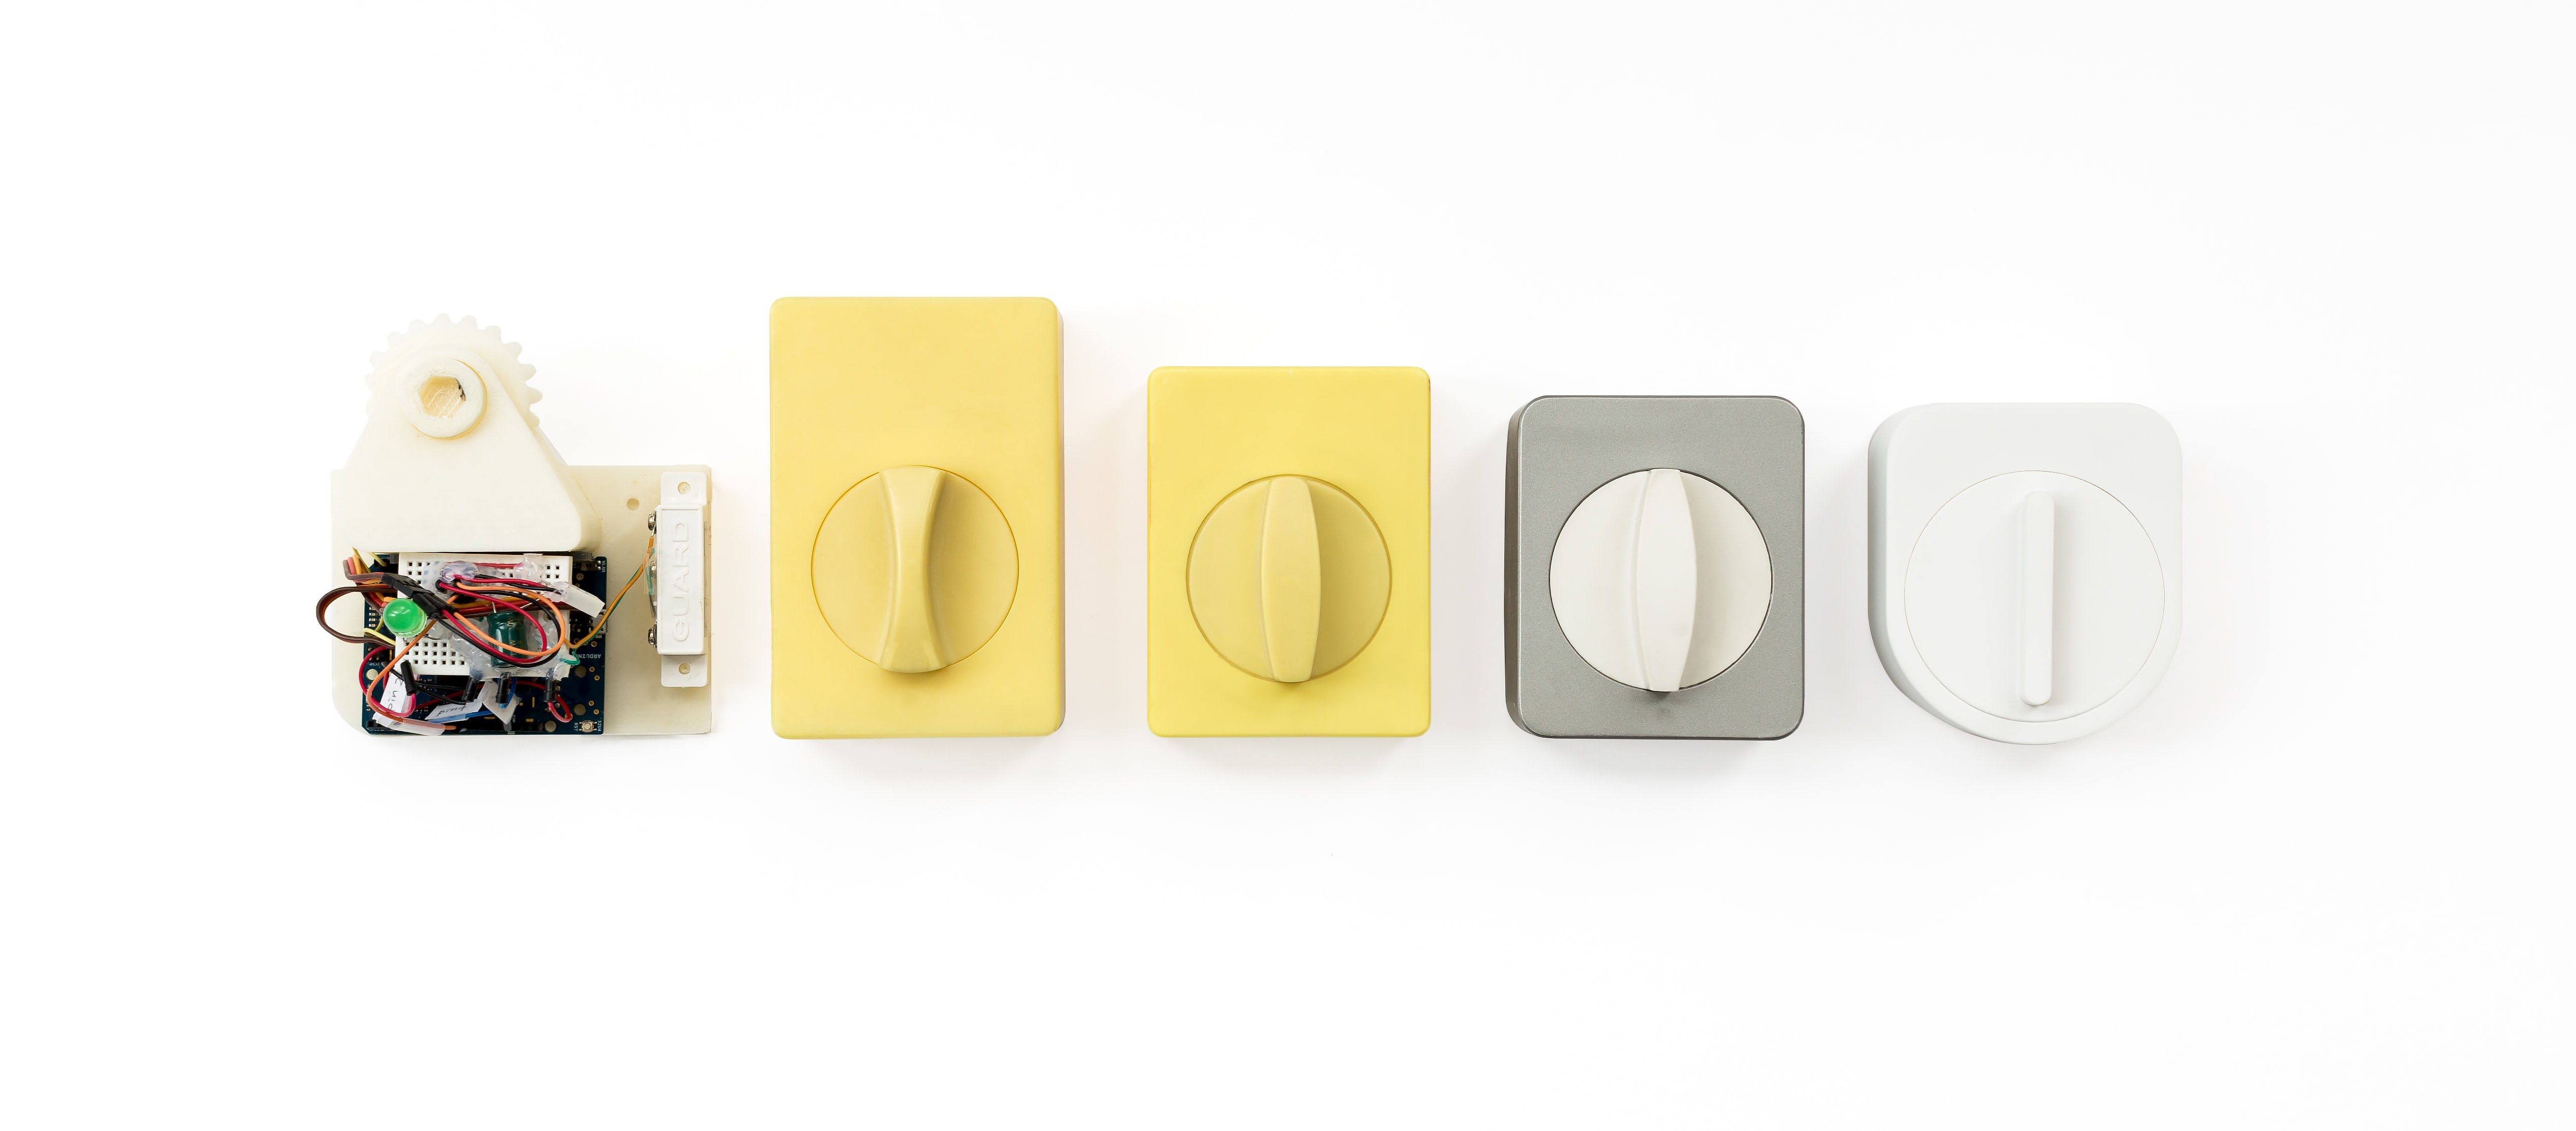 The evolution of the Sesame smart lock from prototype to final product